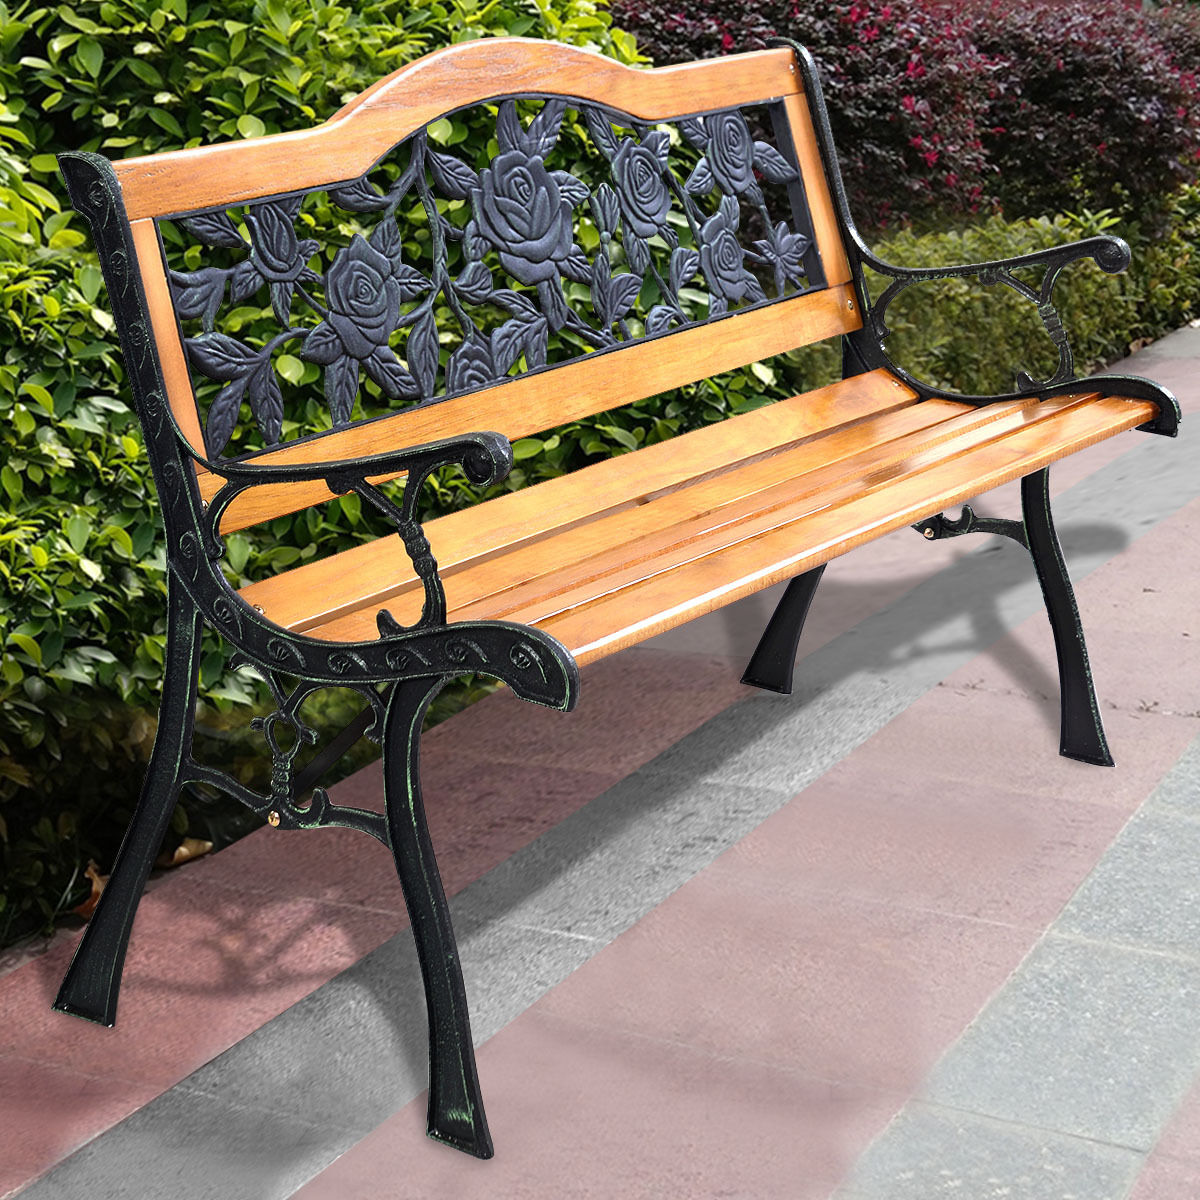 Giantex Patio Park Garden Bench Porch Path Chair Outdoor Furniture Cast Iron Hardwood Back Rosed Benches OP2785